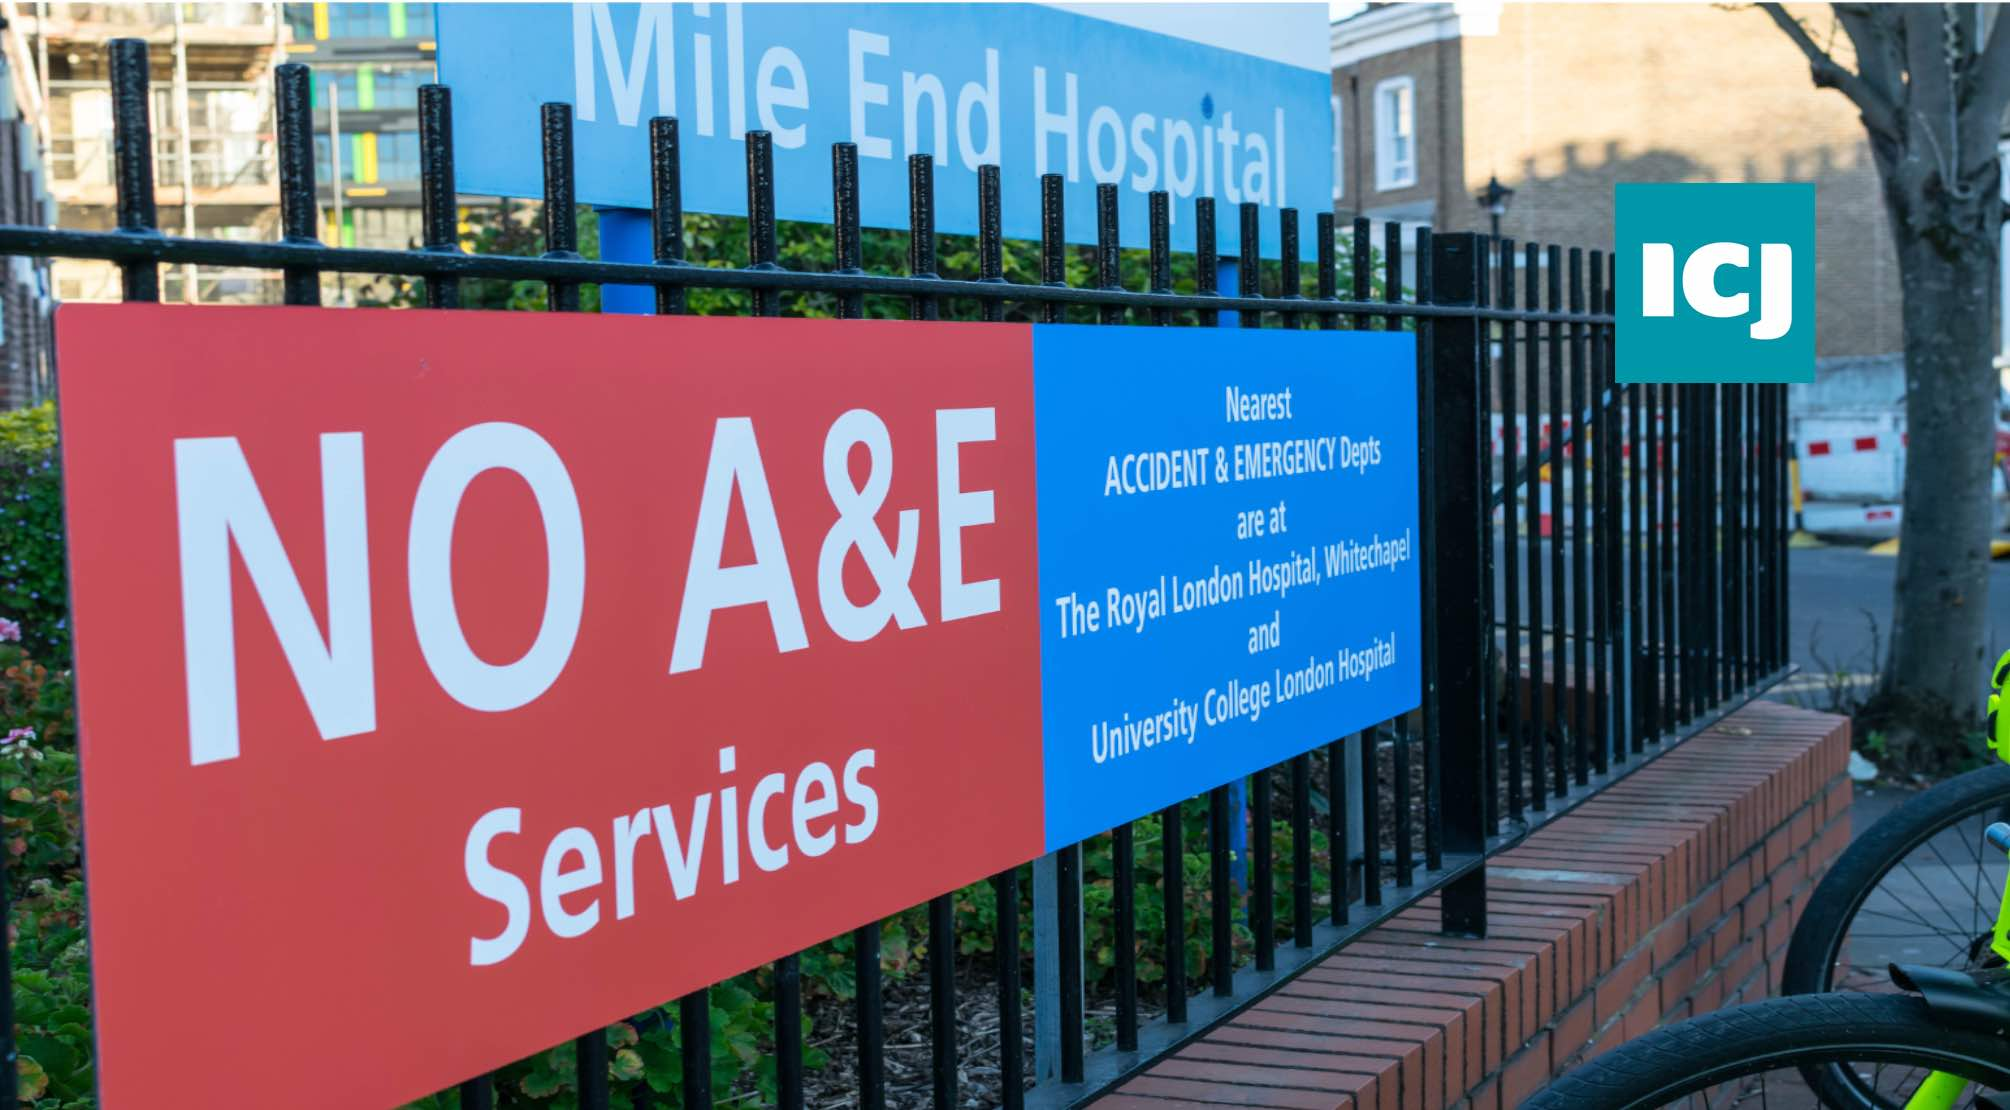 Rural hospitals left in the lurk says Nuffield Trust